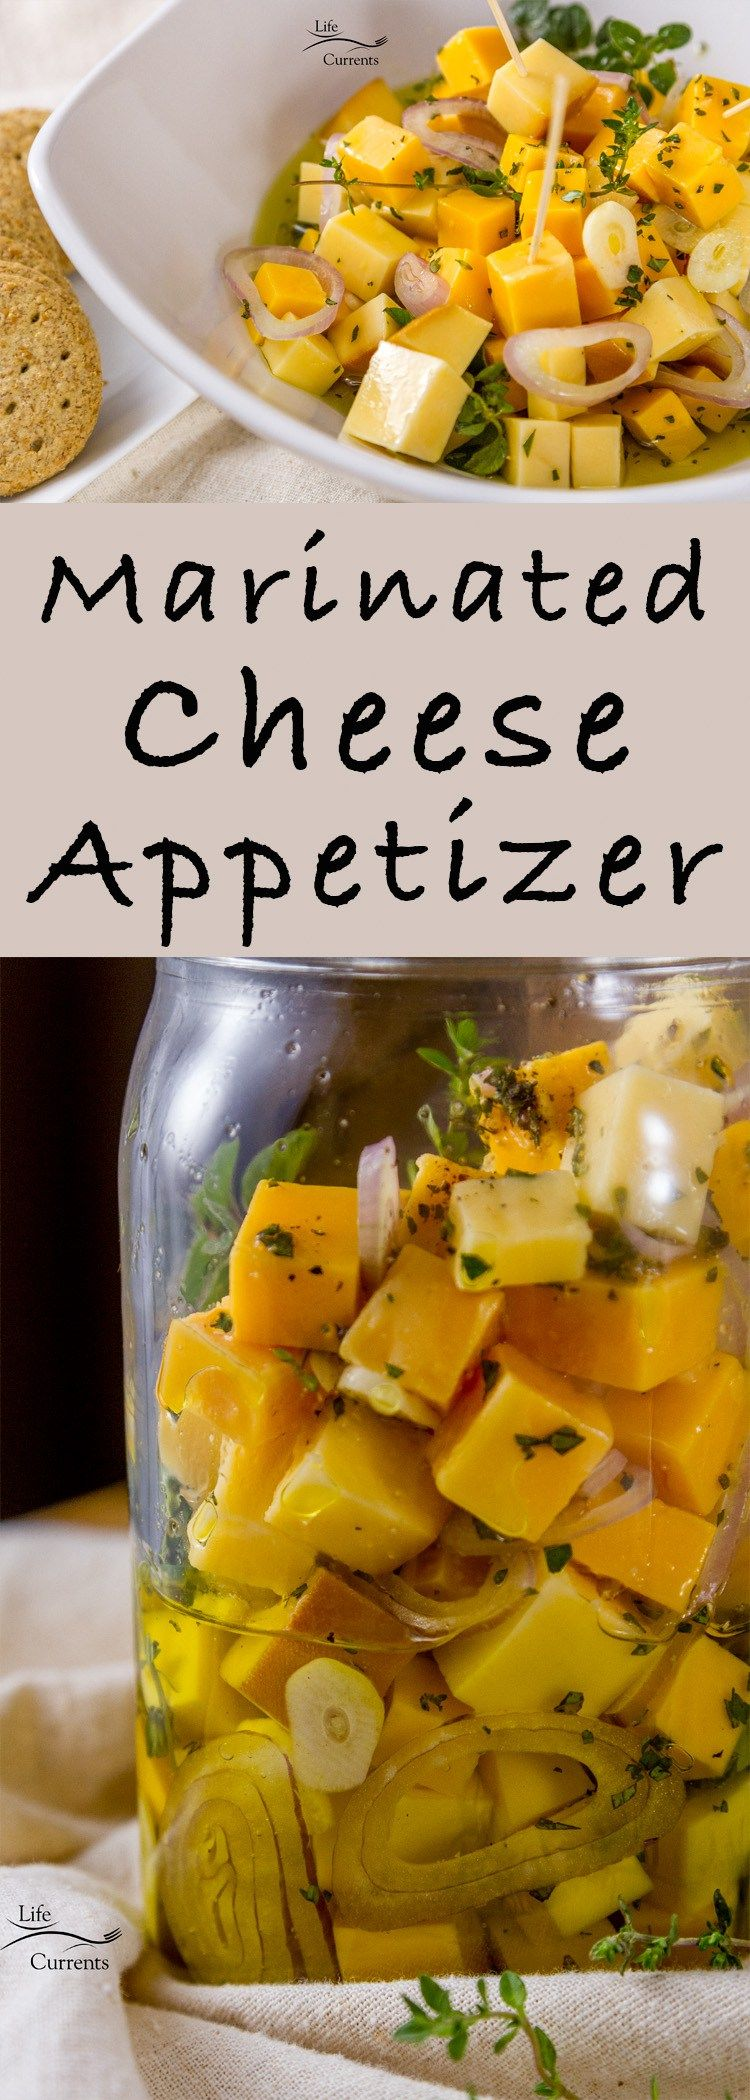 Photo of Marinated Cheese and Herbs Appetizer – Life Currents